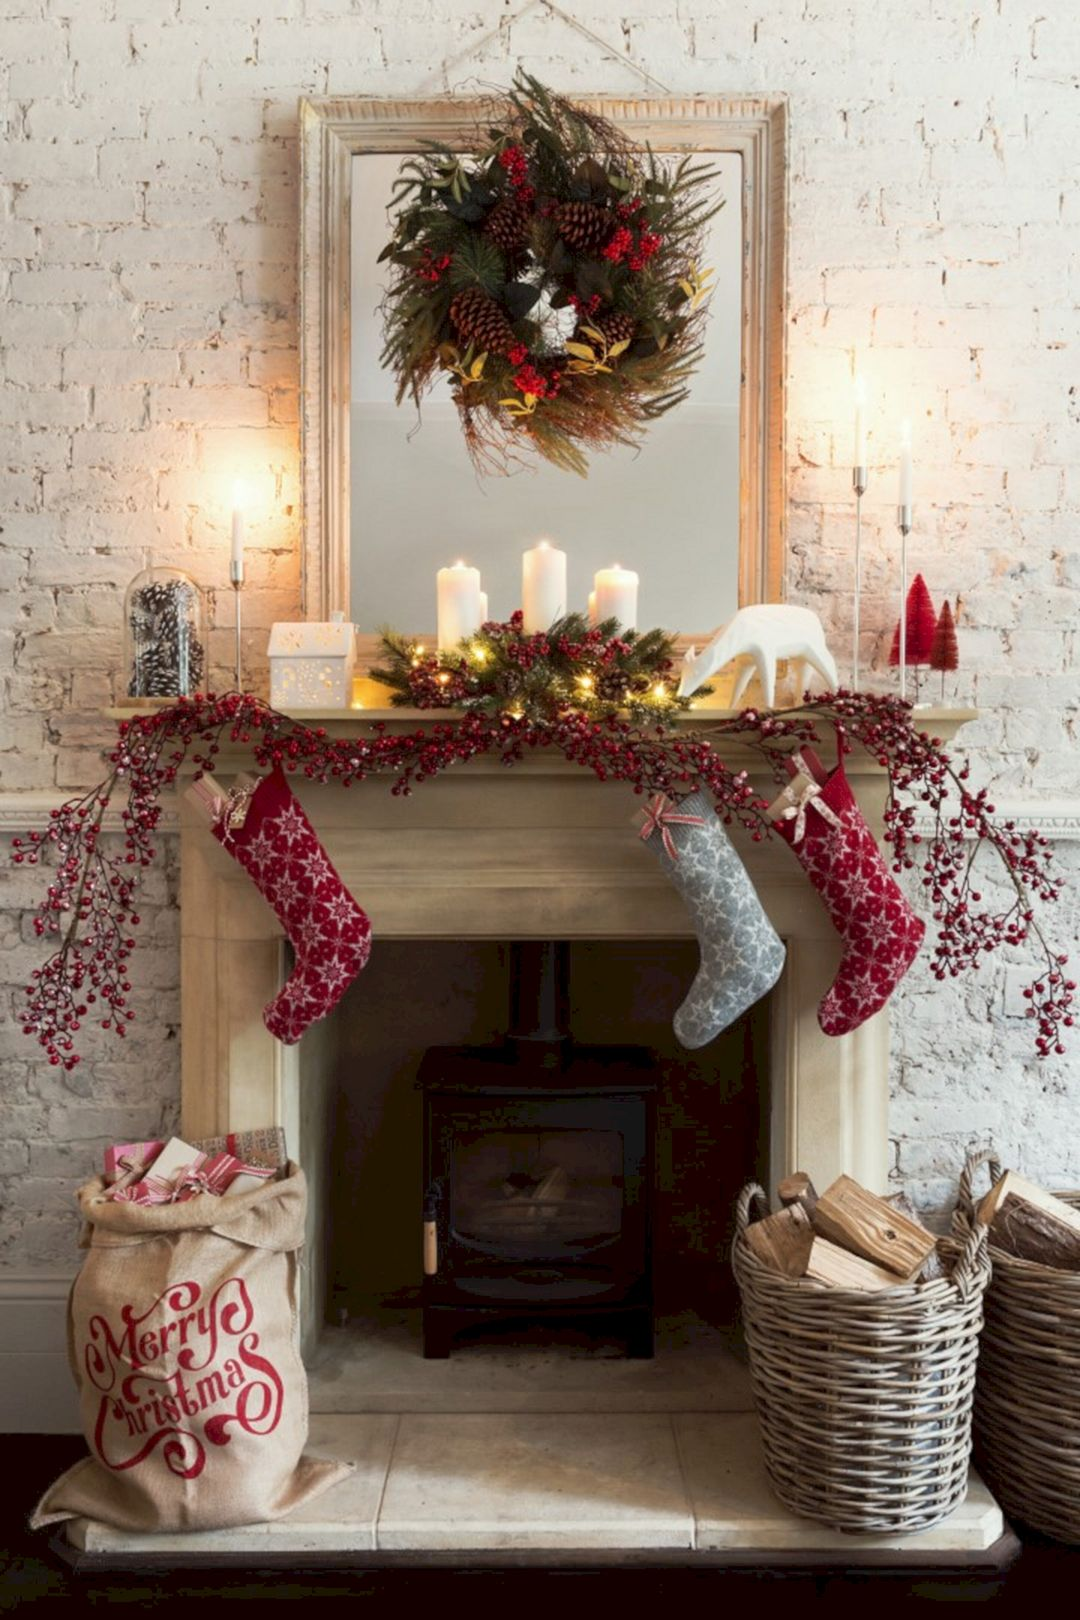 Living room christmas decor ideas and tips for bringing - Christmas decorations for the living room ...